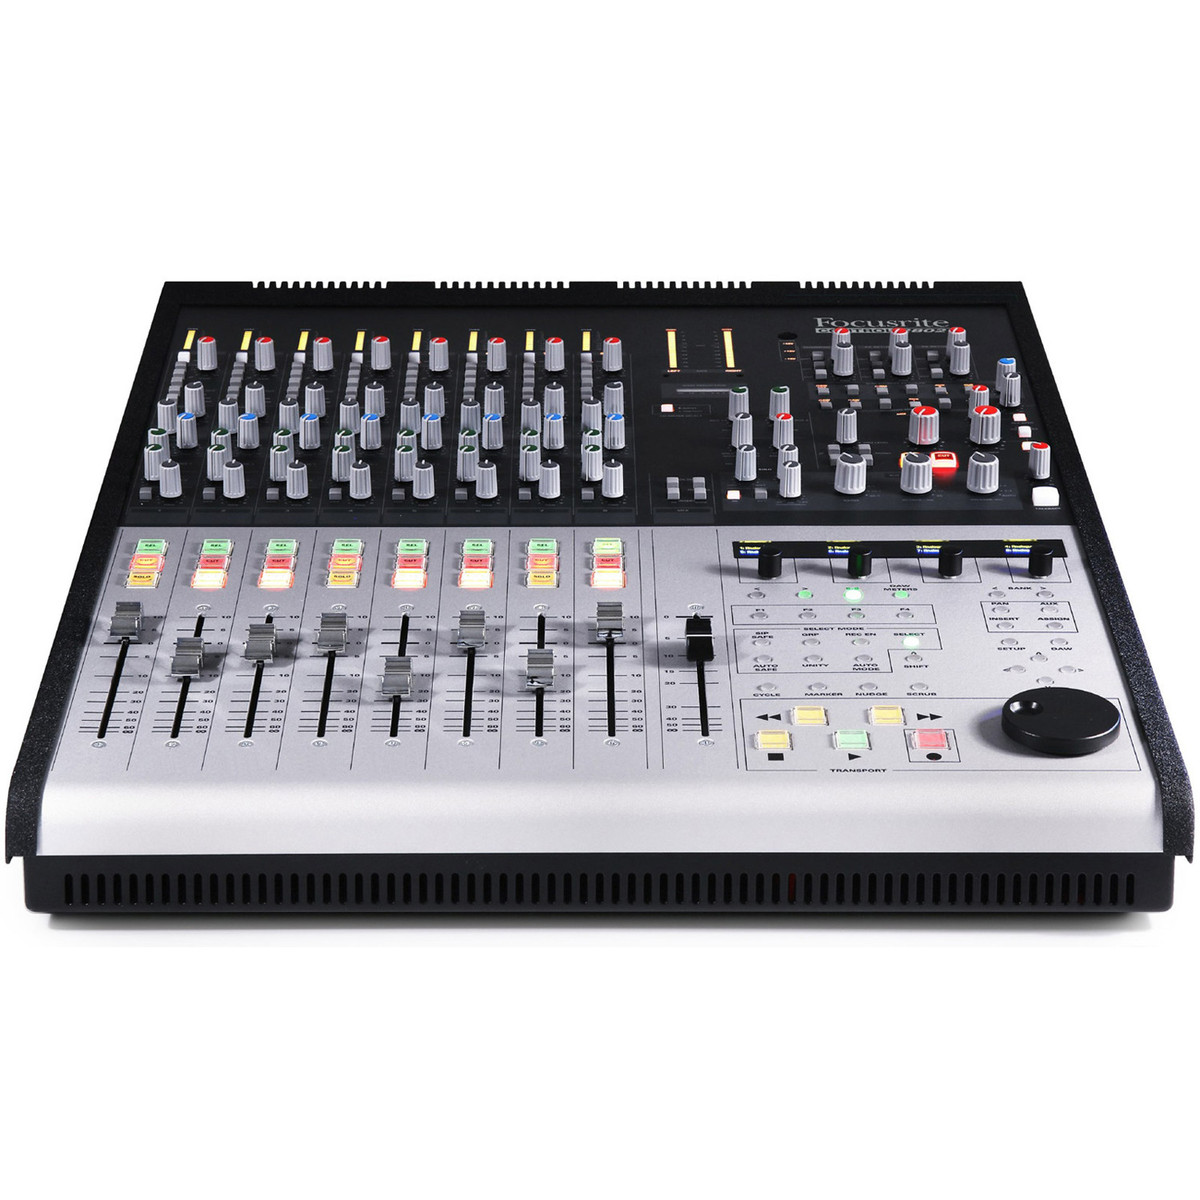 disc focusrite control 2802 analog mixing console at gear4music. Black Bedroom Furniture Sets. Home Design Ideas